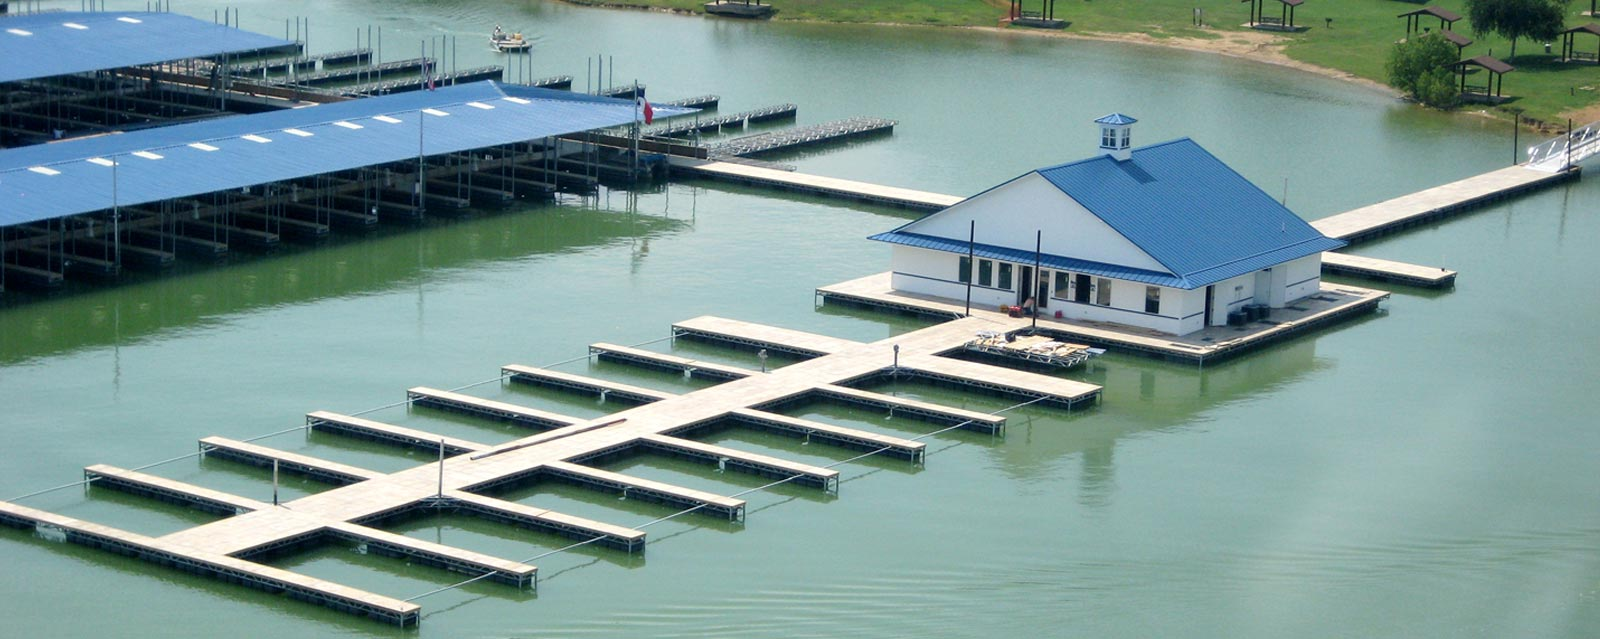 Image result for Floating Docks